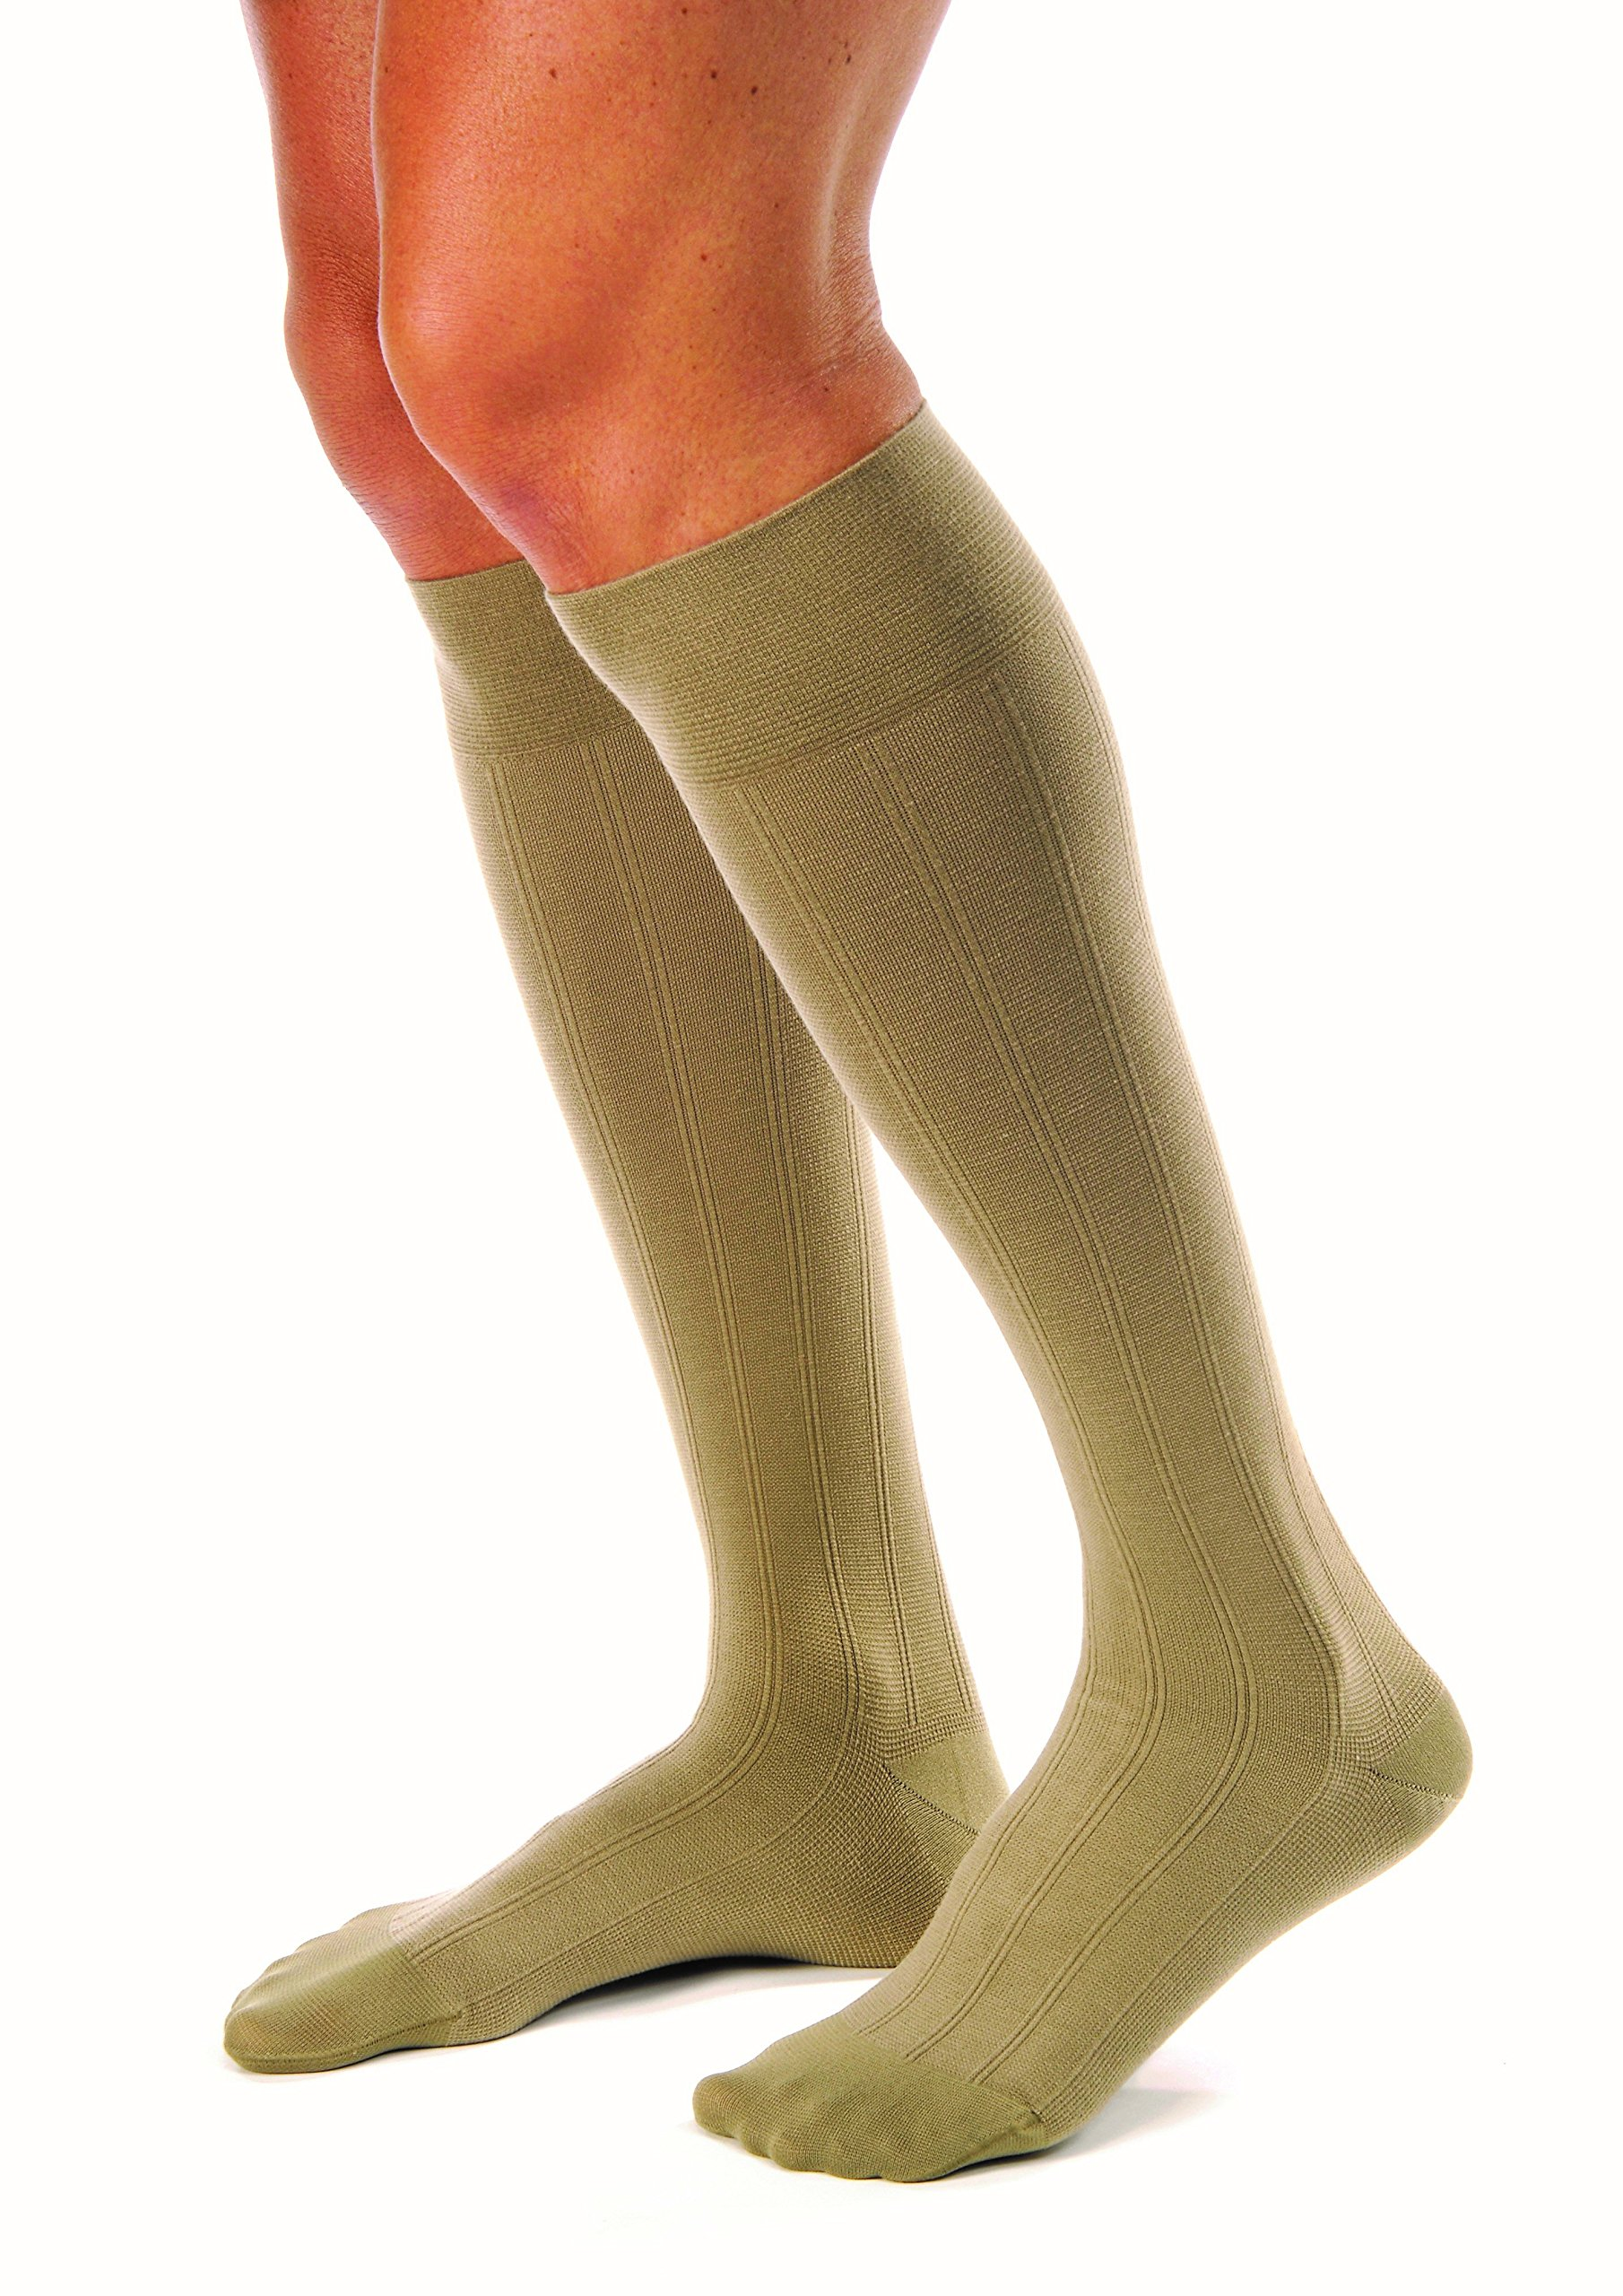 JOBST forMen Casual 20-30 mmHg Knee High Compression Socks, Khaki, Large by JOBST